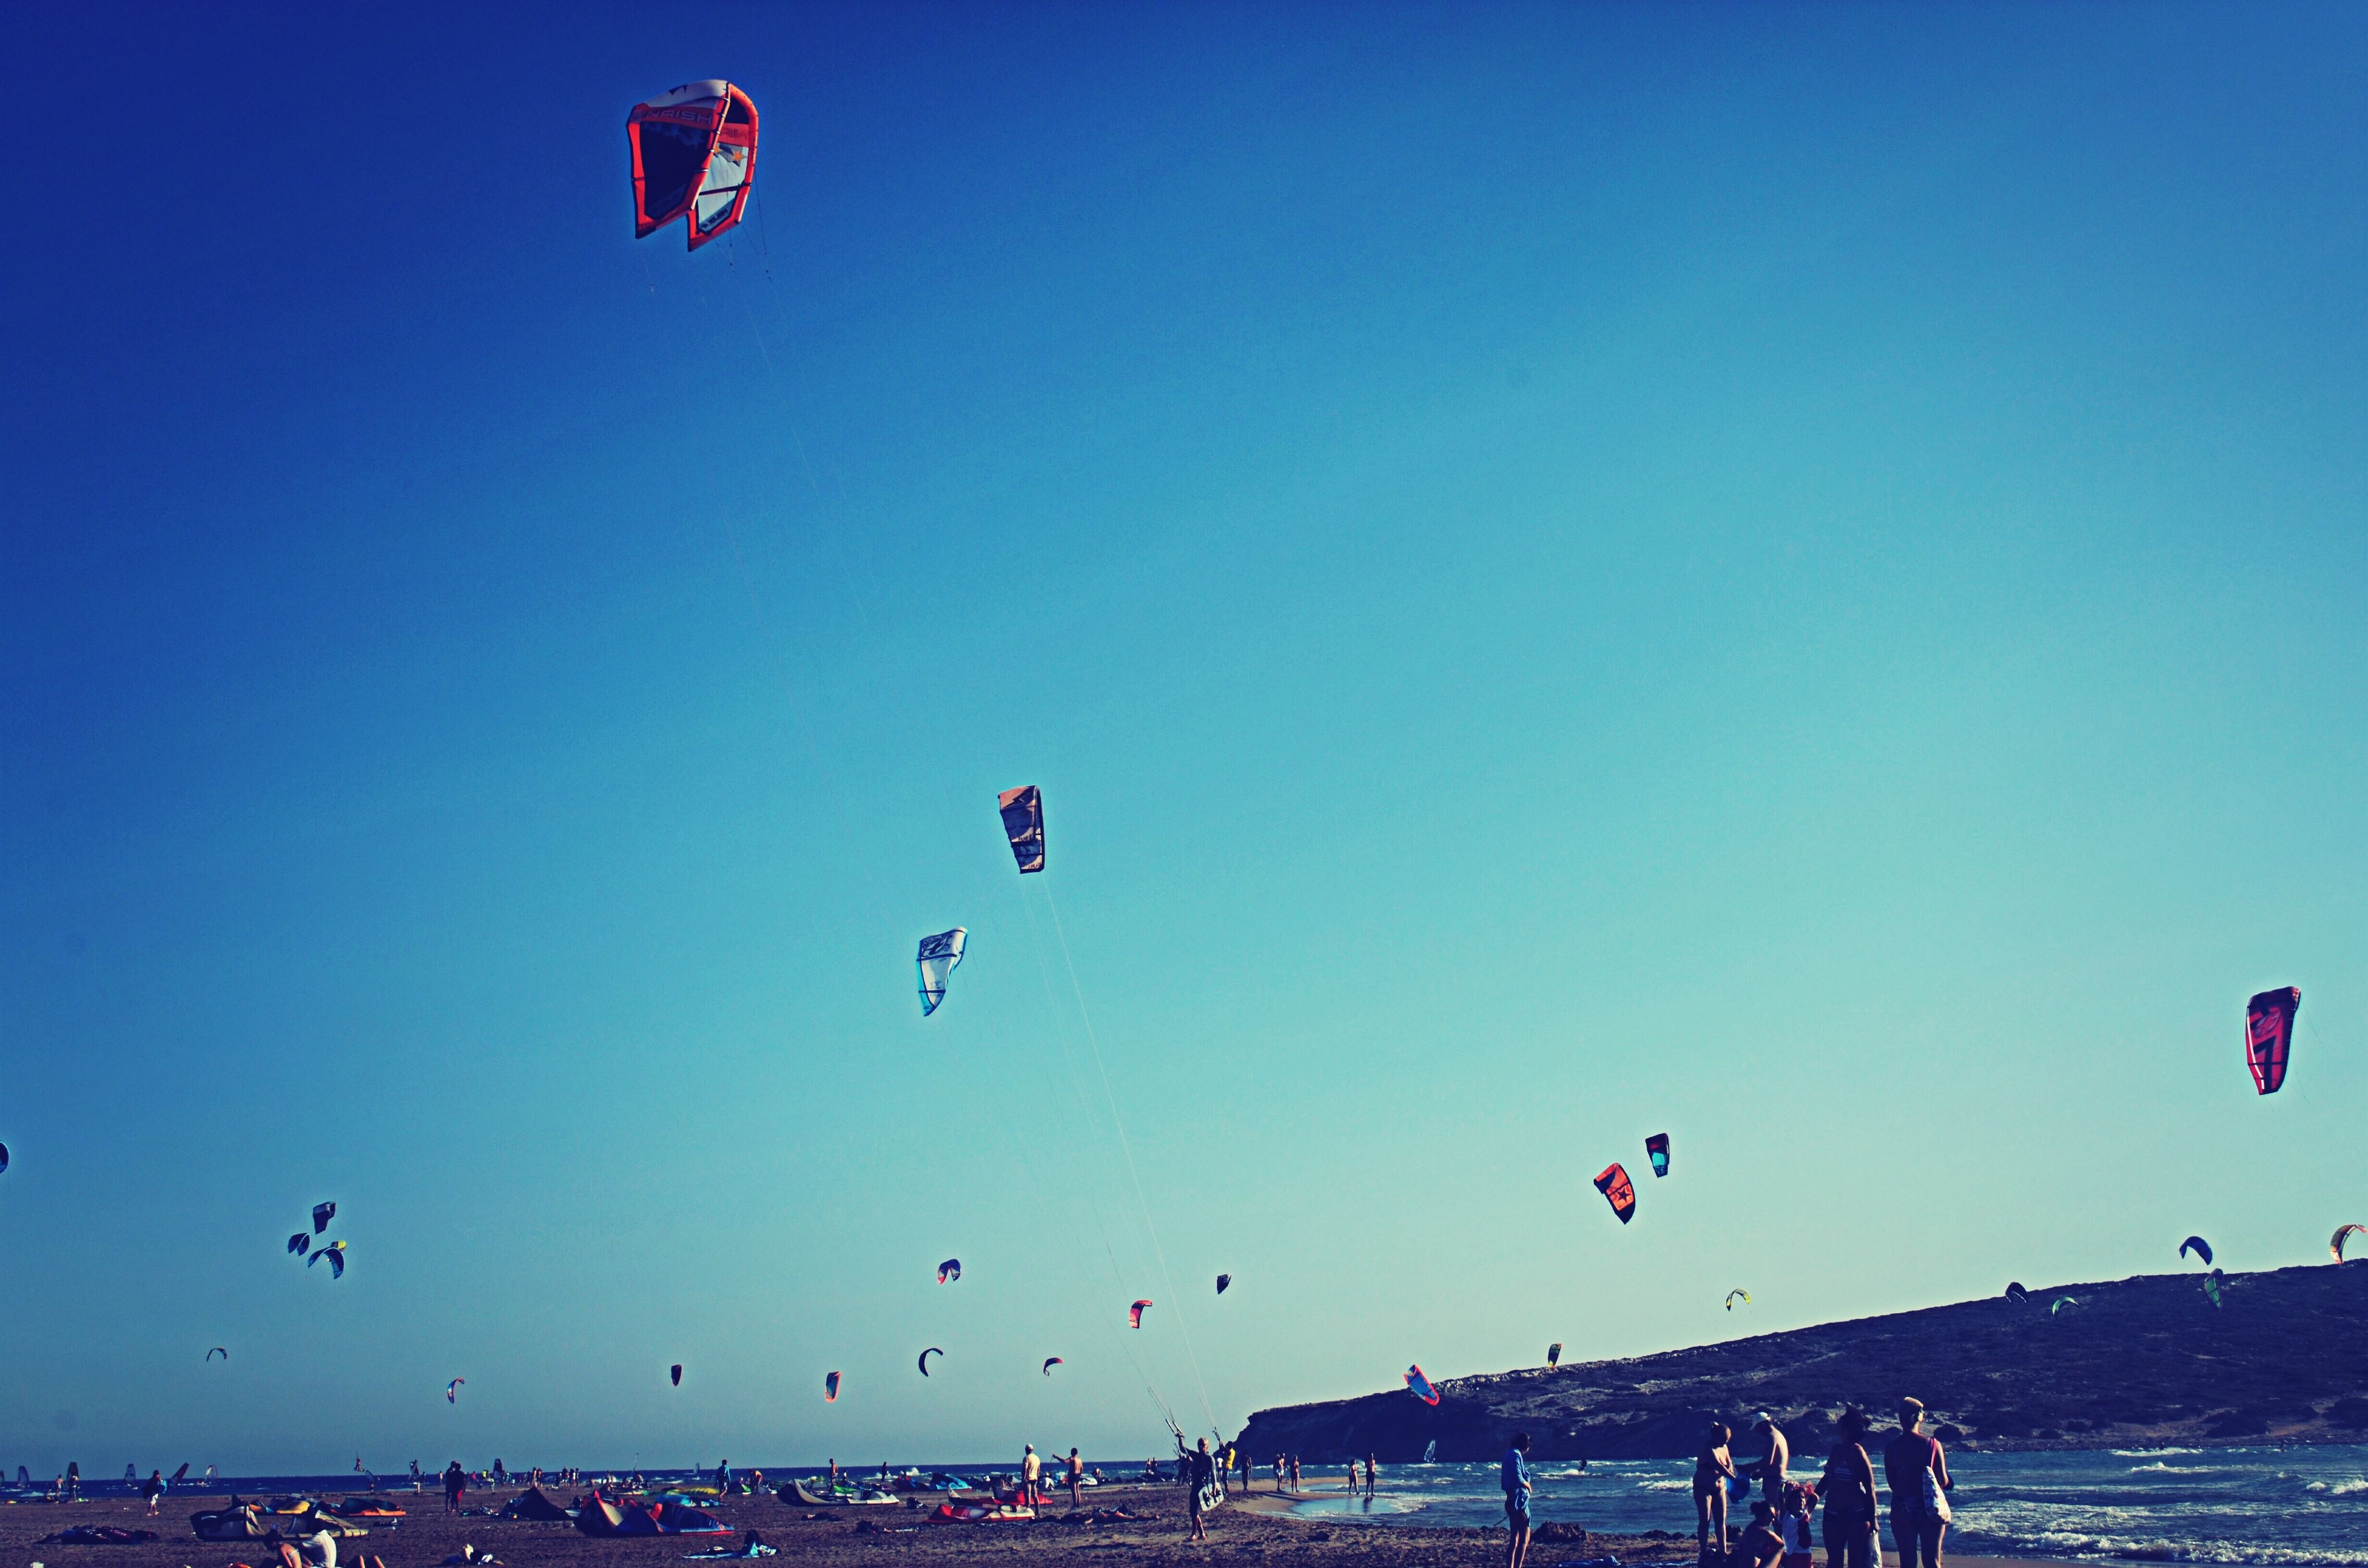 flying, mid-air, leisure activity, parachute, clear sky, extreme sports, lifestyles, paragliding, large group of people, adventure, fun, enjoyment, transportation, vacations, sport, beach, blue, copy space, sea